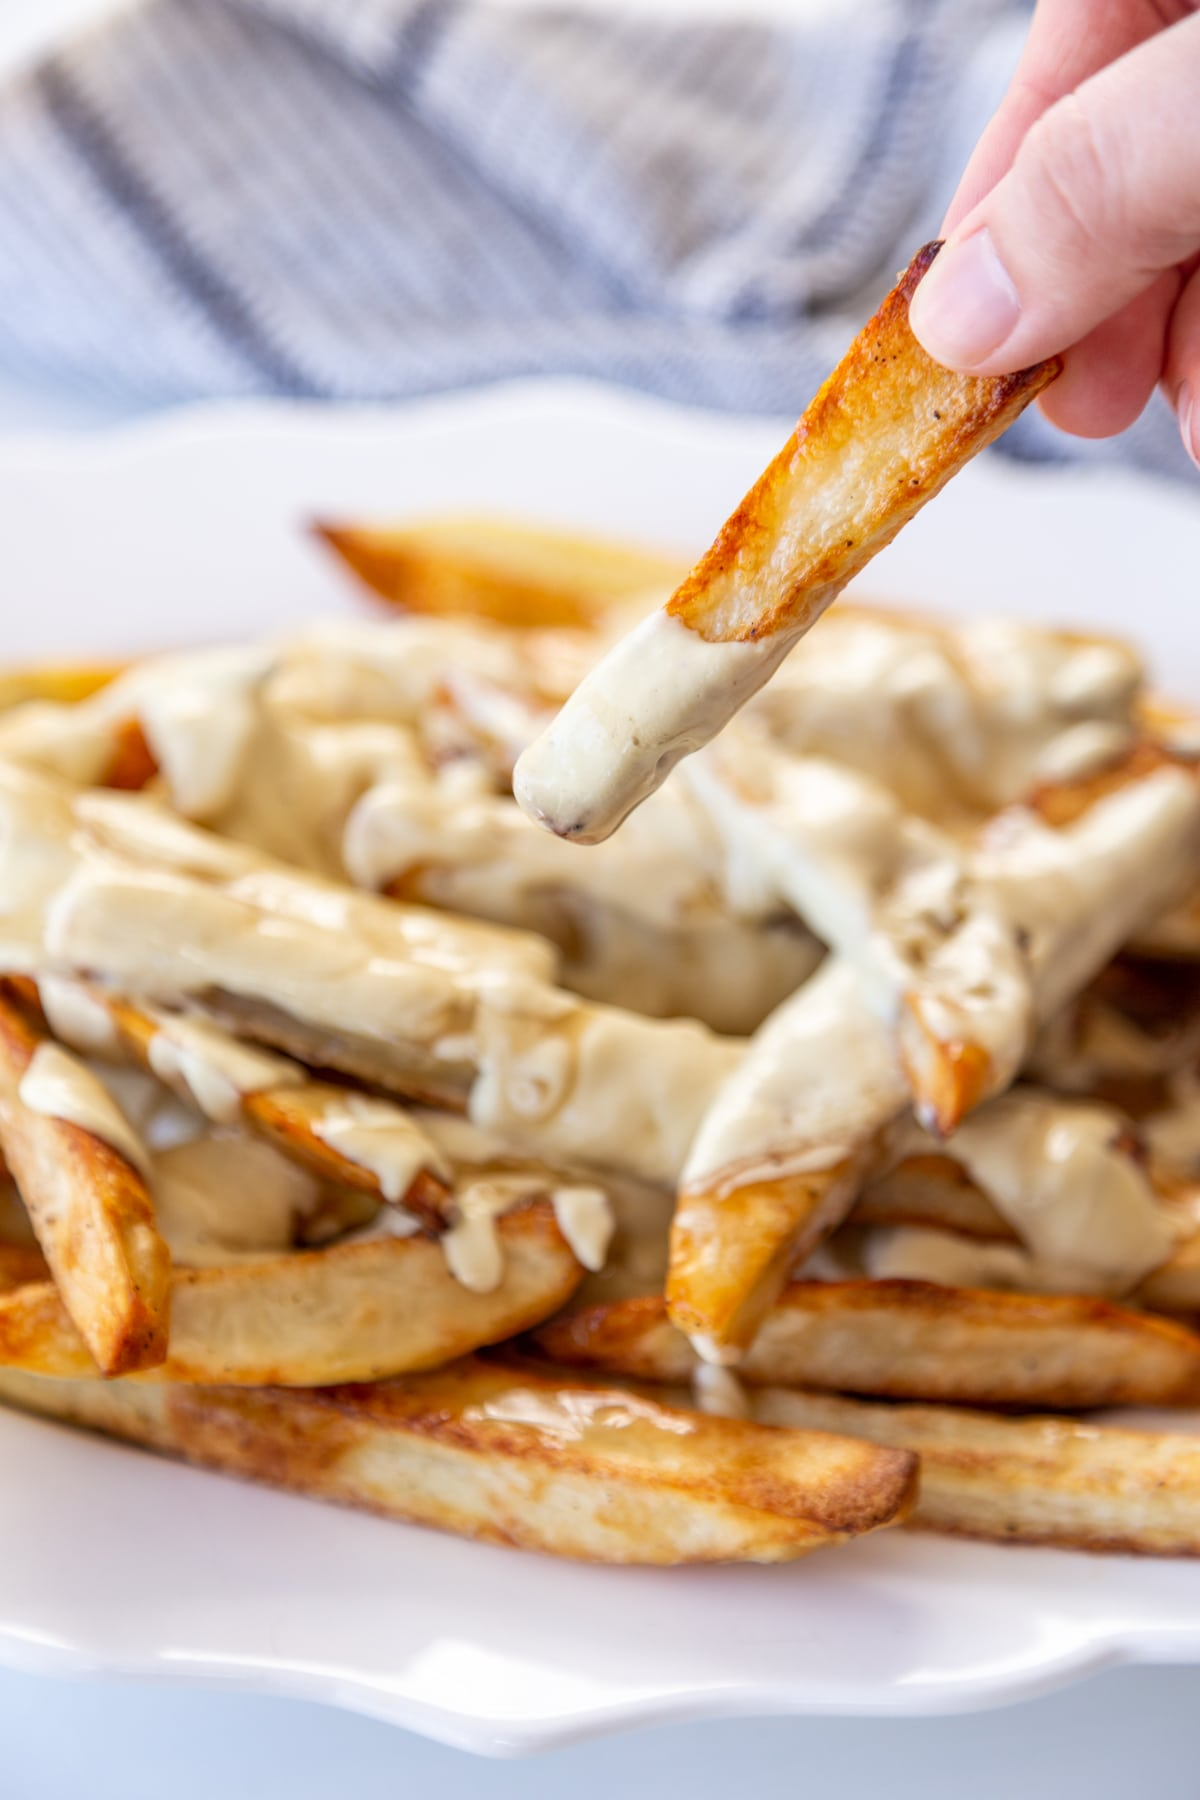 A white oval platter with poutine and a hand taking a fry with cheese sauce off of the plate.